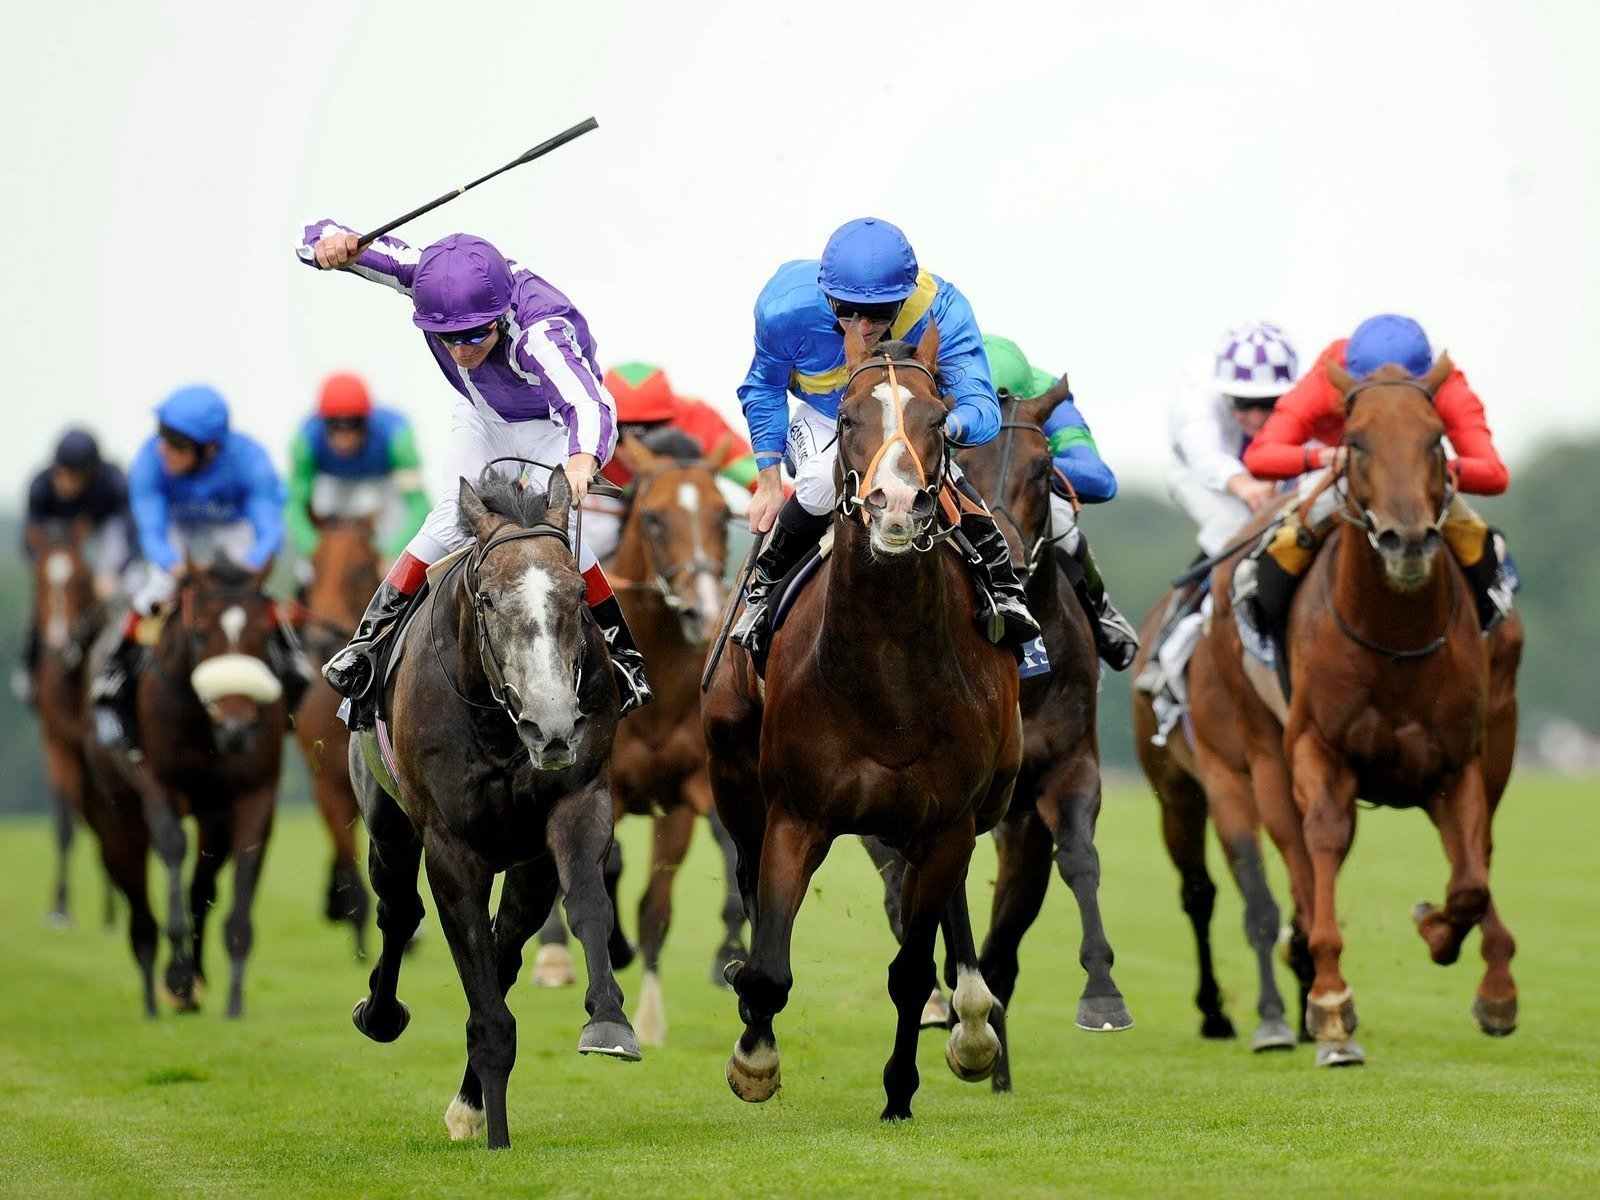 Exciting race action in the final furlongs!